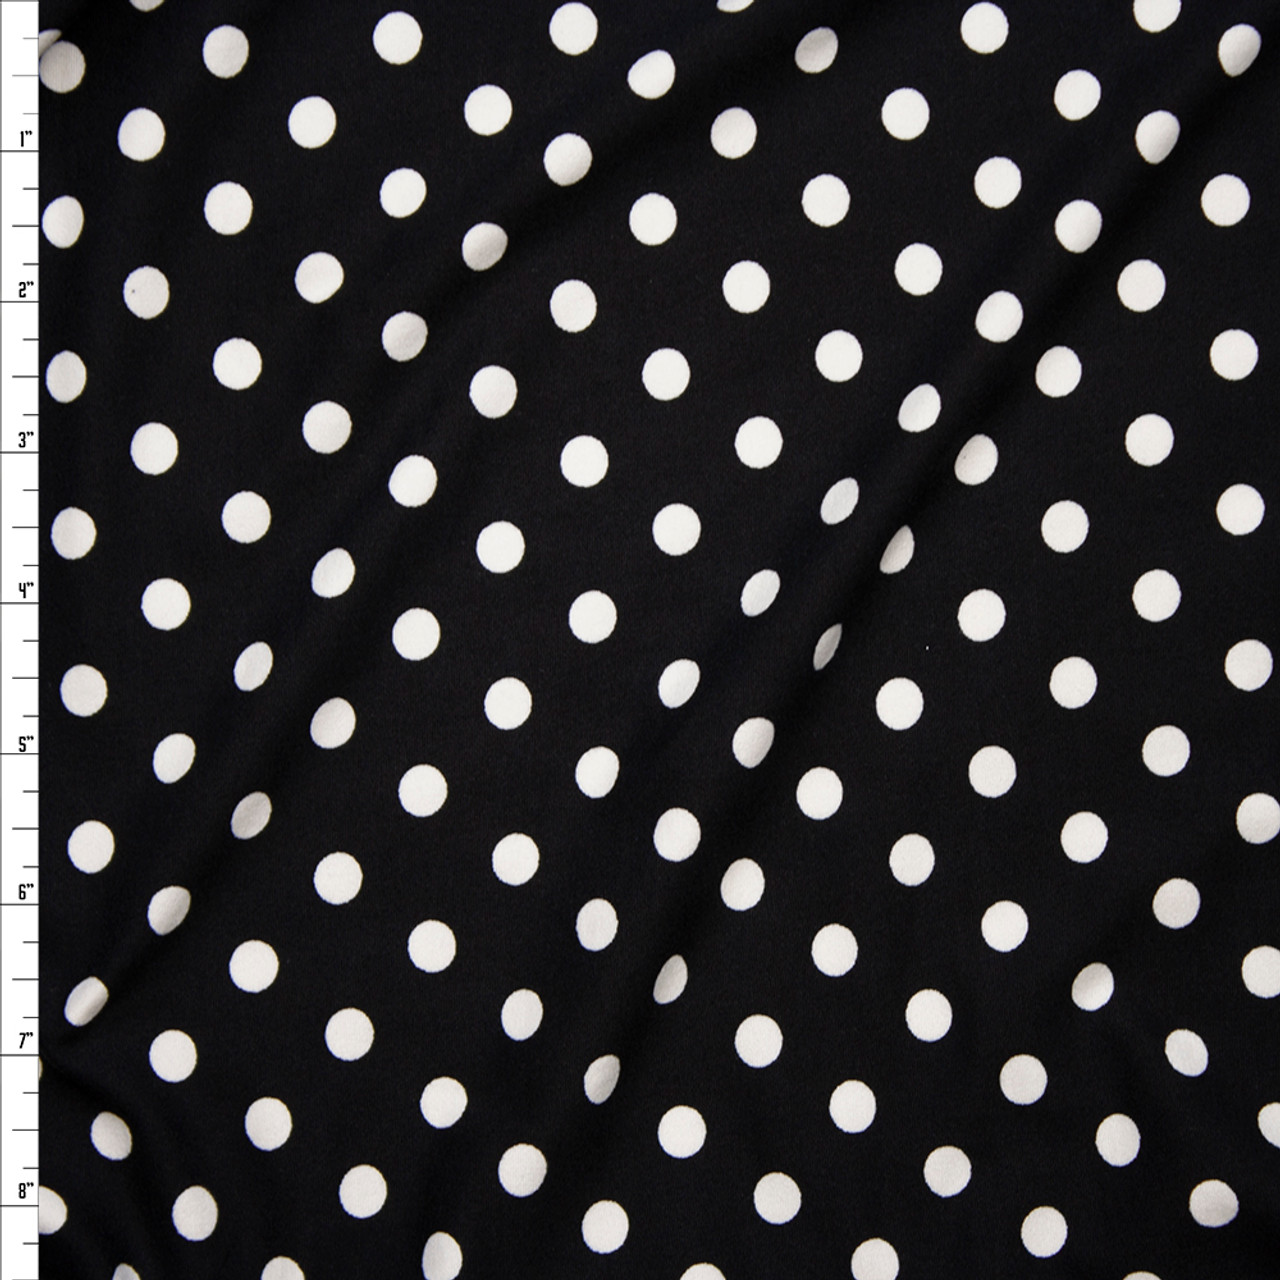 d64d44df0e4 White on Black 8mm Polka Dot Double Brushed Poly Spandex Print Fabric By  The Yard ...